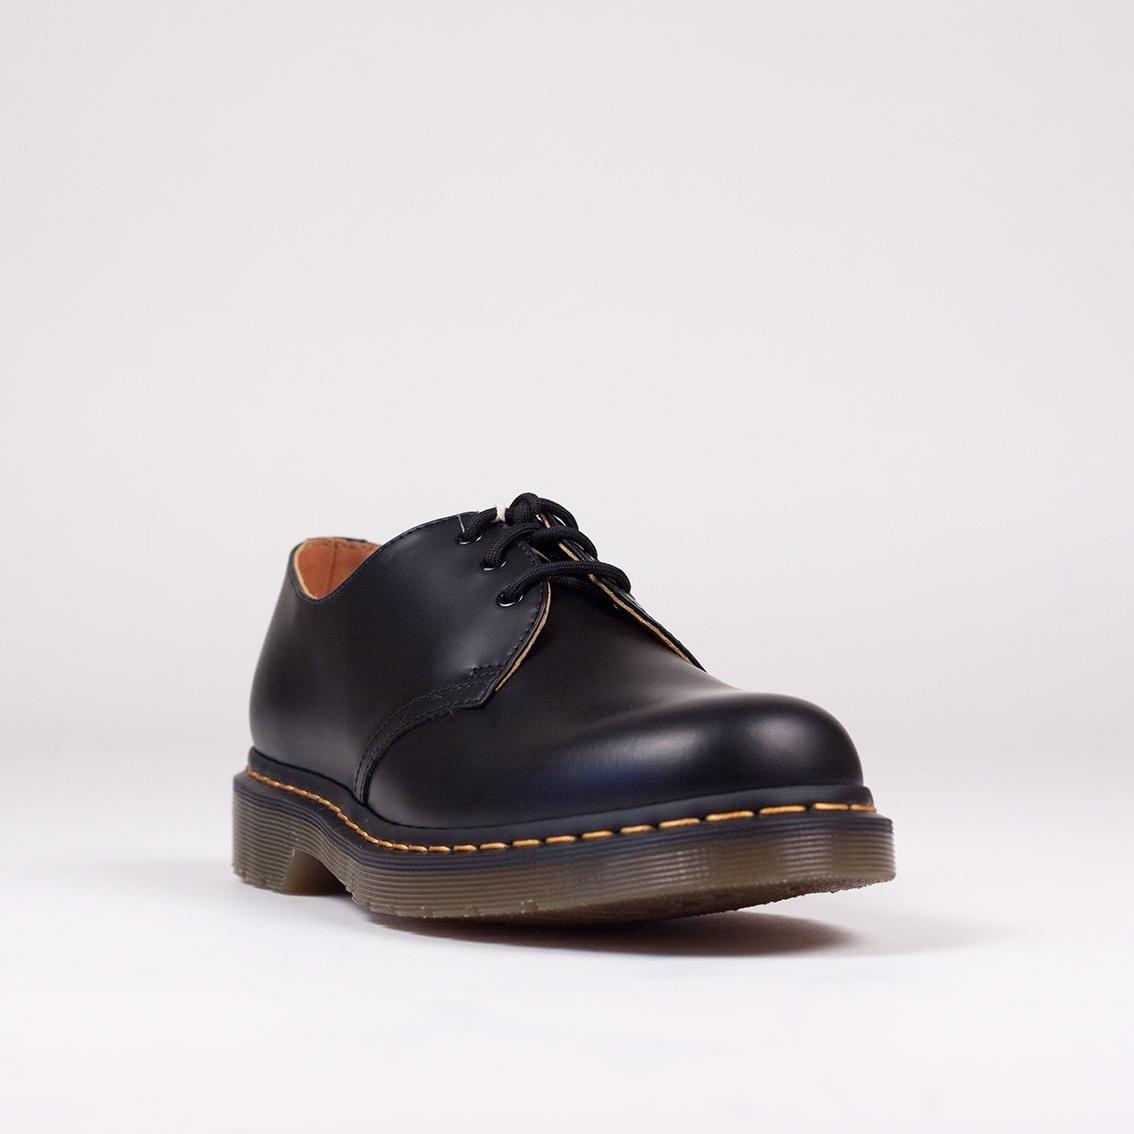 DR.MARTENS 1461 BLACK SMOOTH STYLE NO.11838002